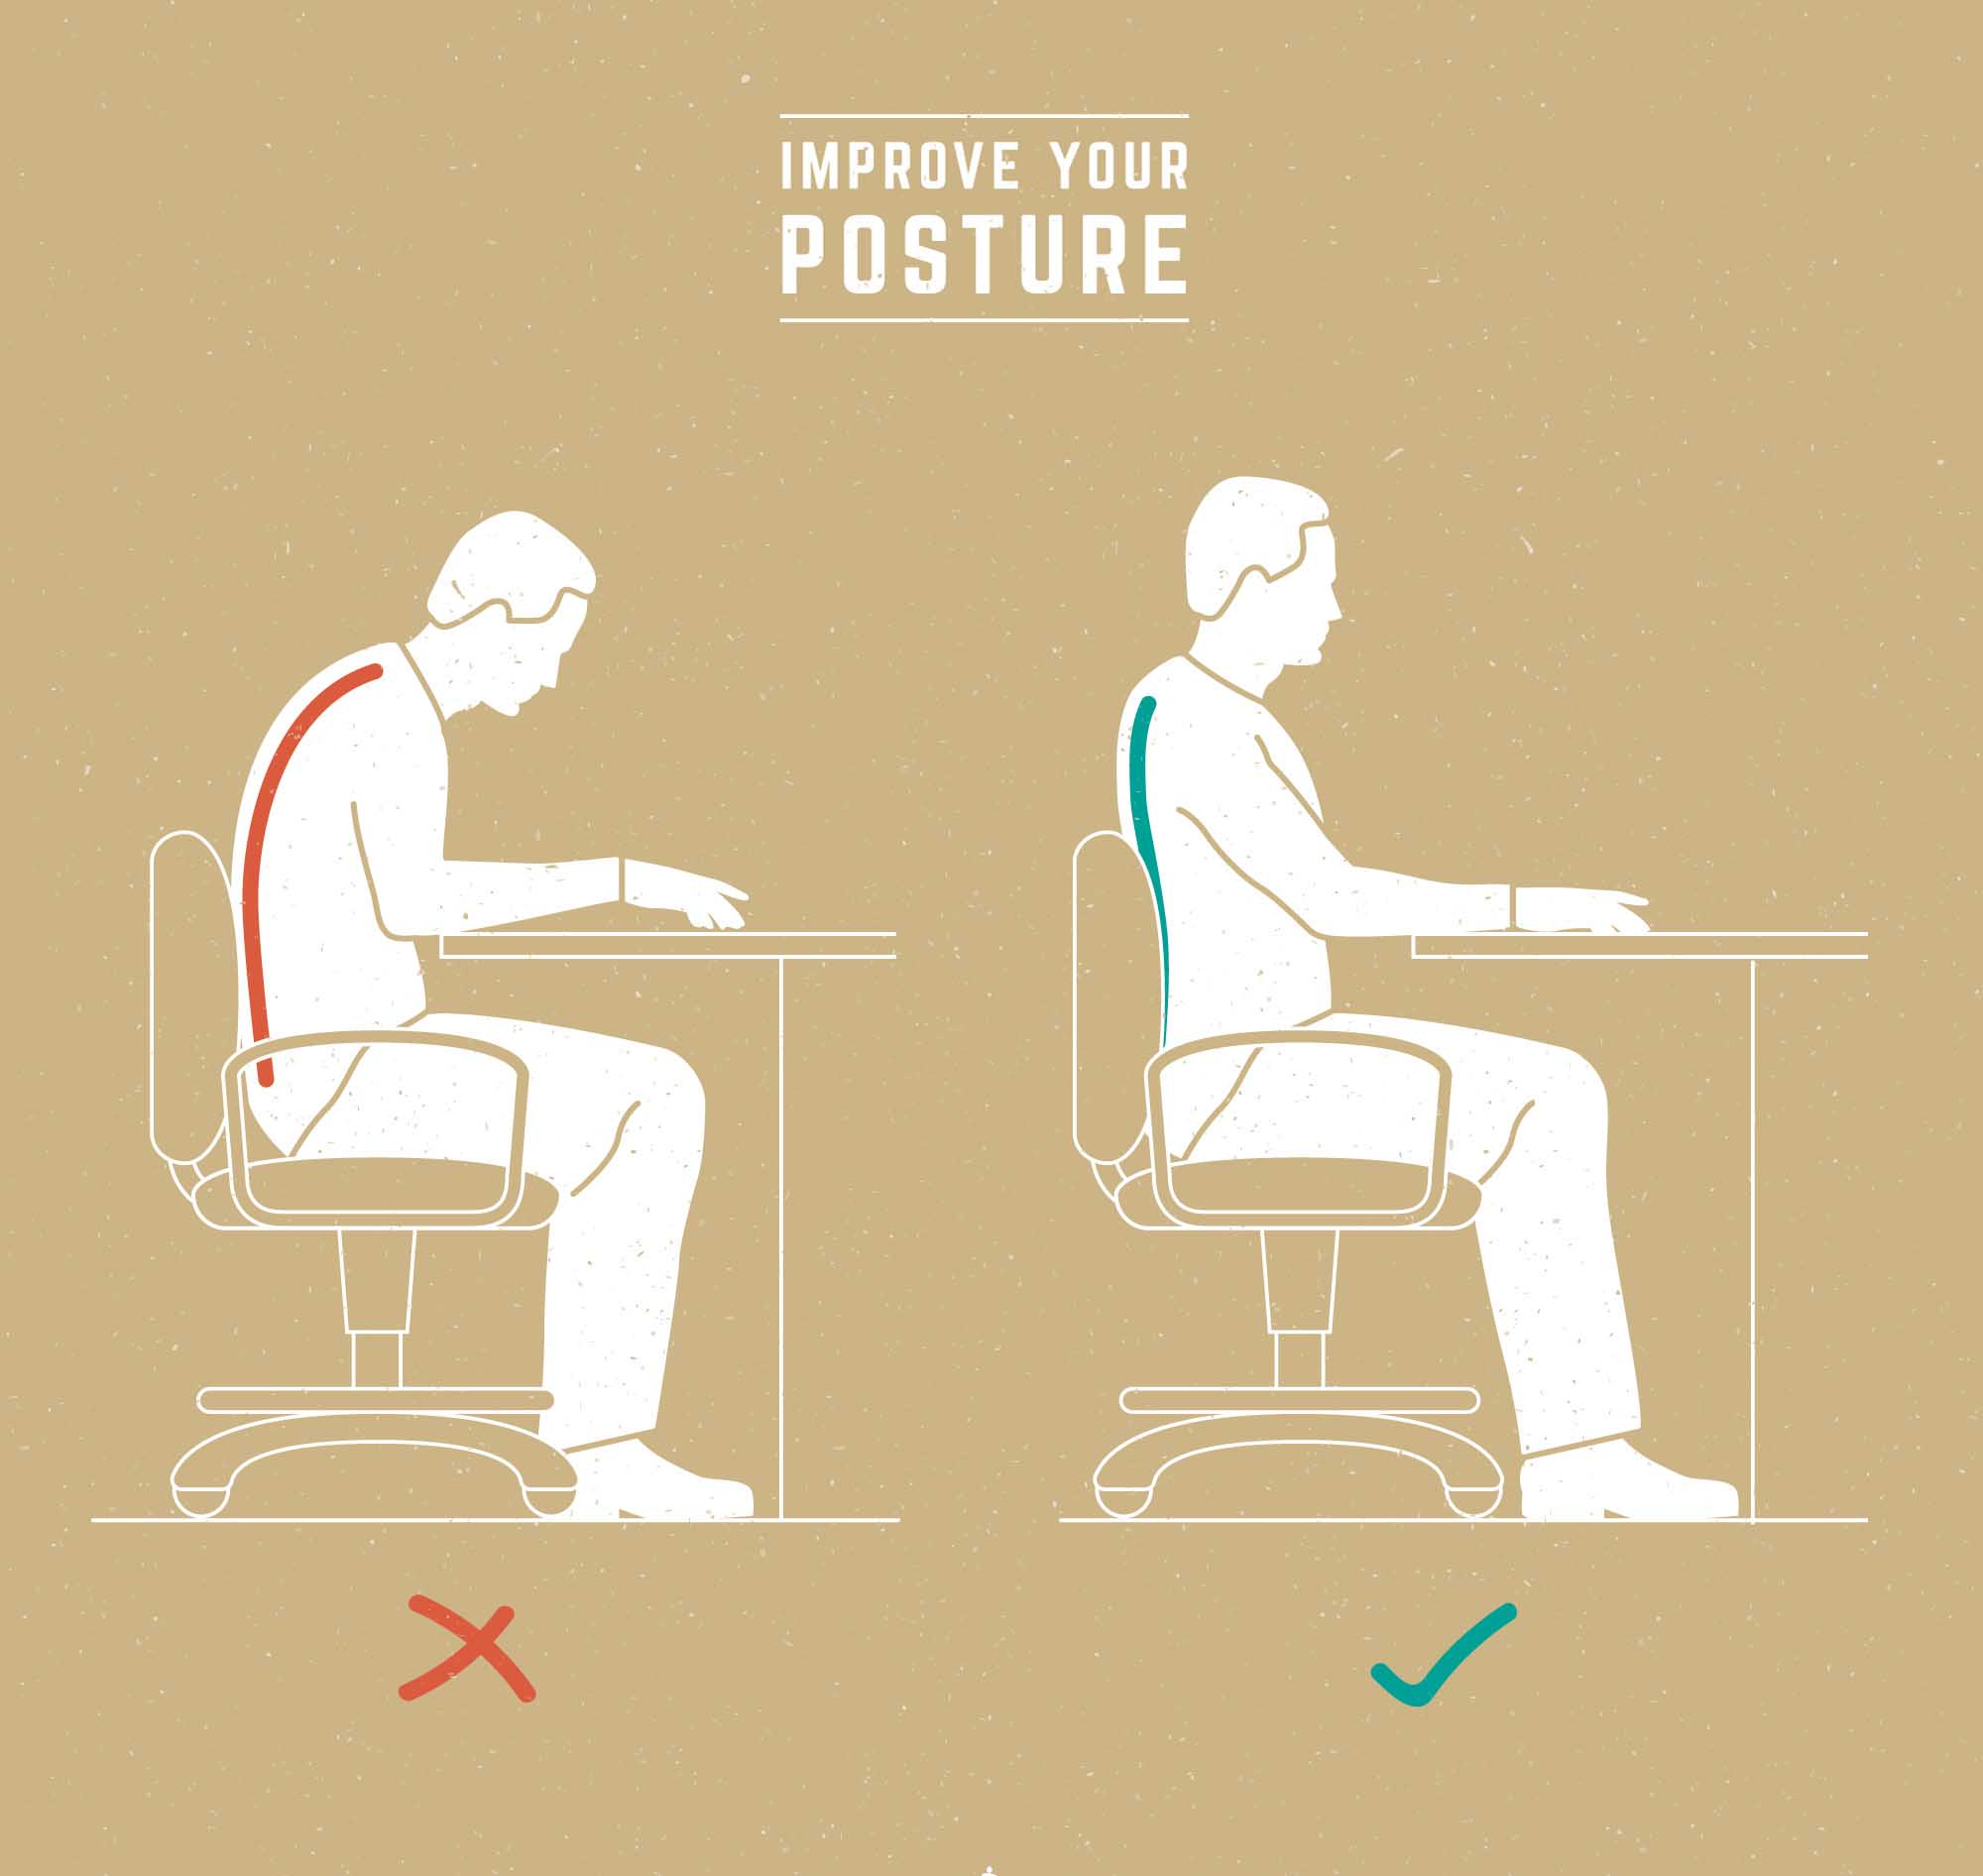 Improve your posture-office chair